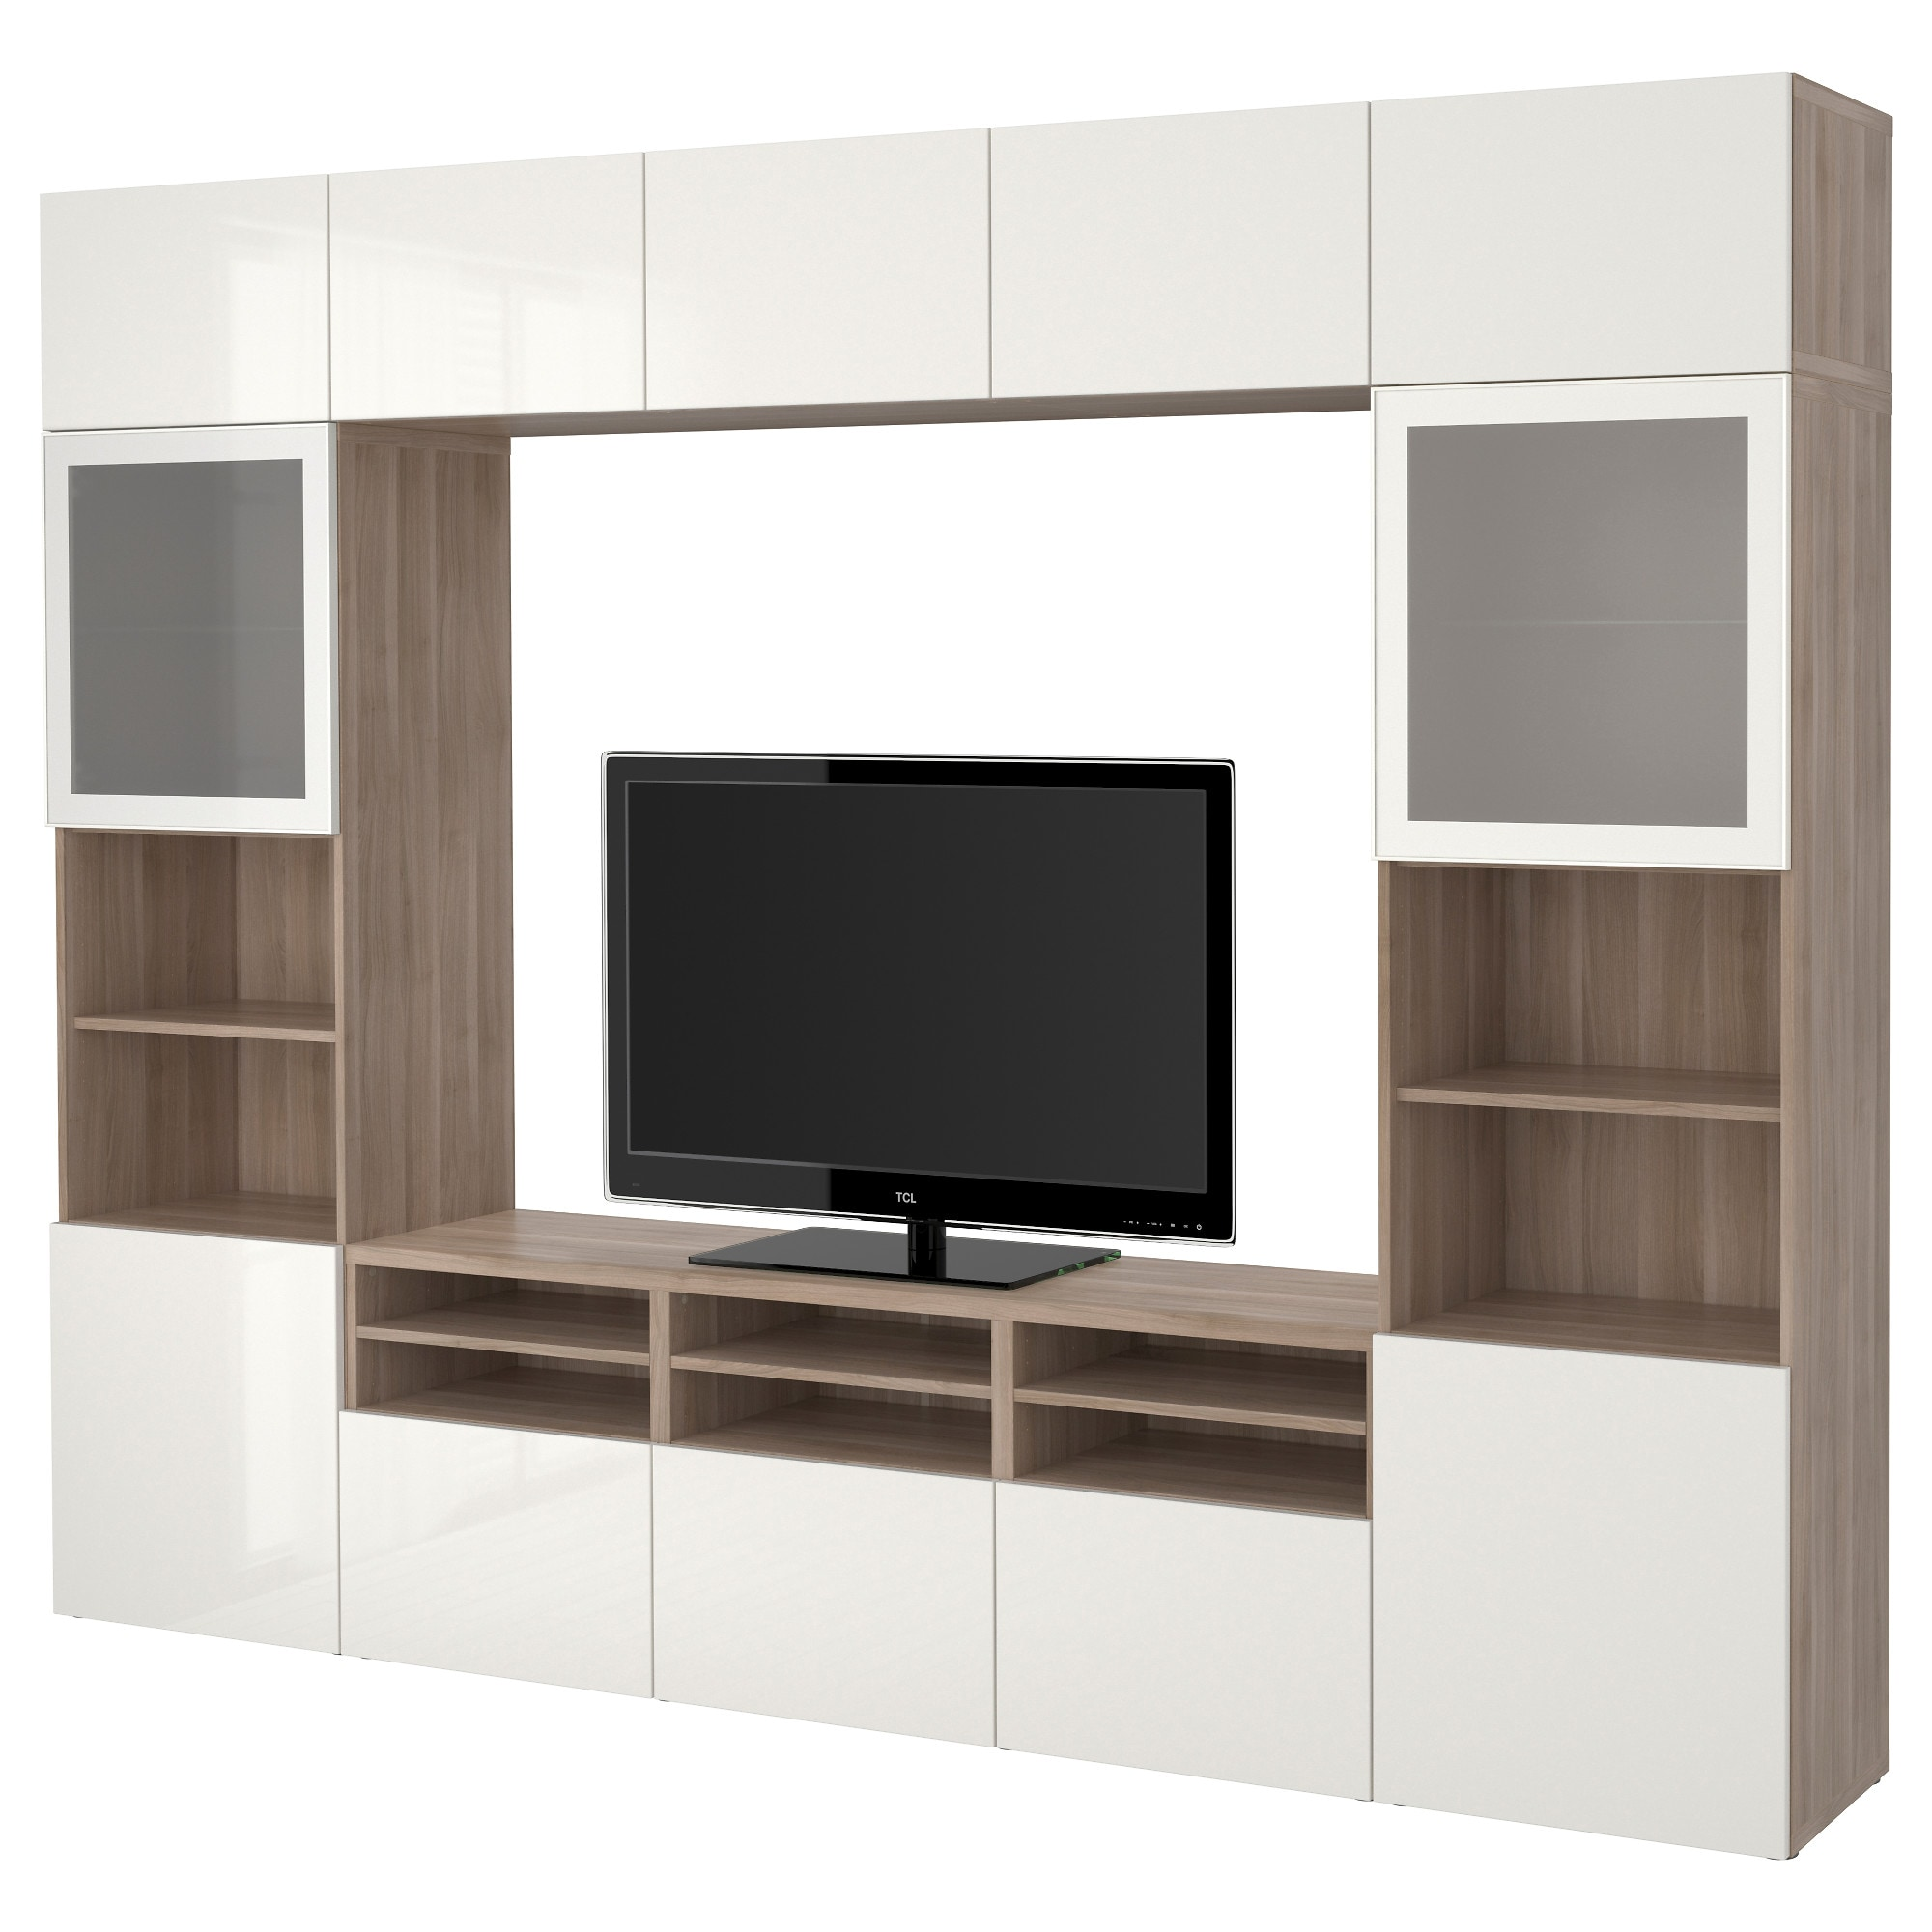 tv wall cabinet ikea 28 images related keywords suggestions for ikea media center best 197. Black Bedroom Furniture Sets. Home Design Ideas